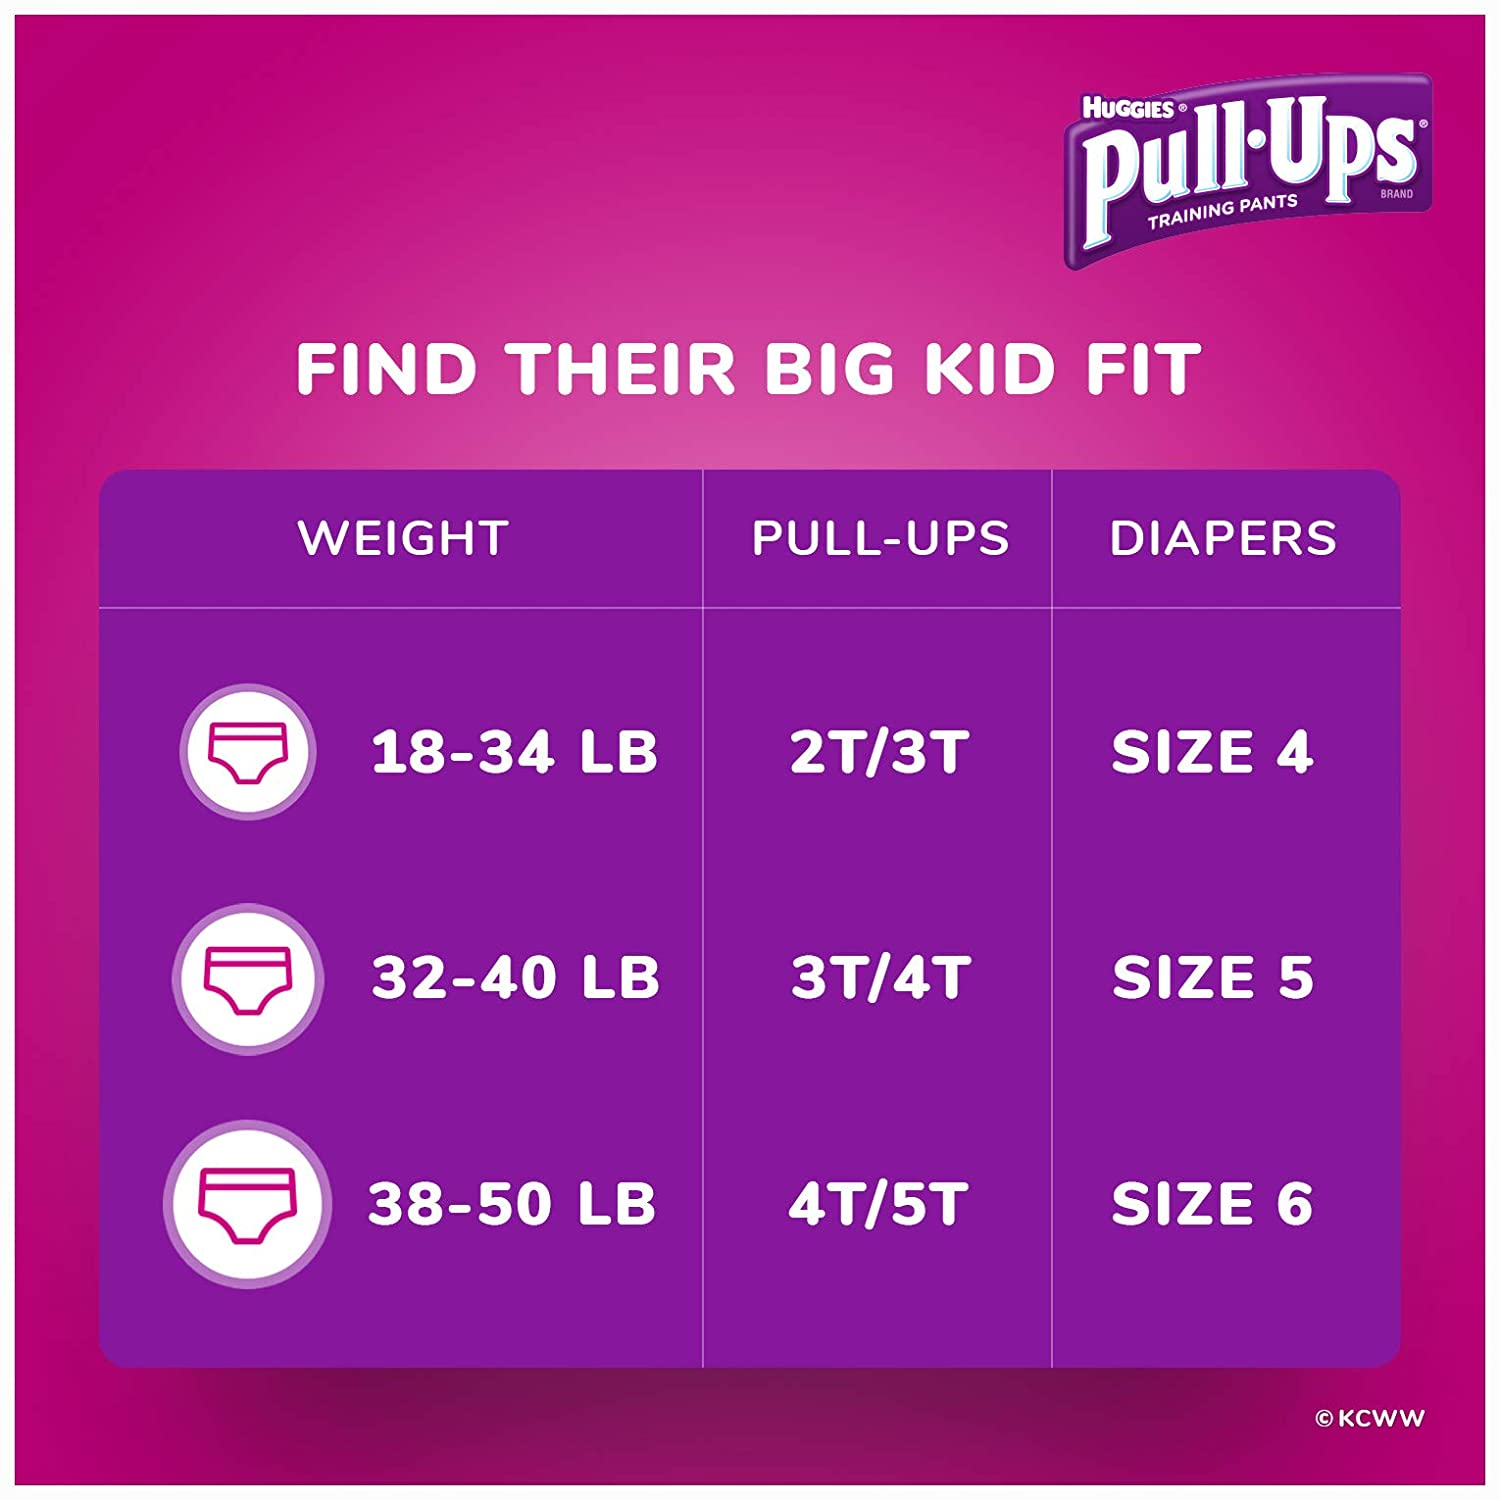 Pull-Ups Cool /& Learn Training Pants for Girls 3T-4T 96 Count 32-40 lb.